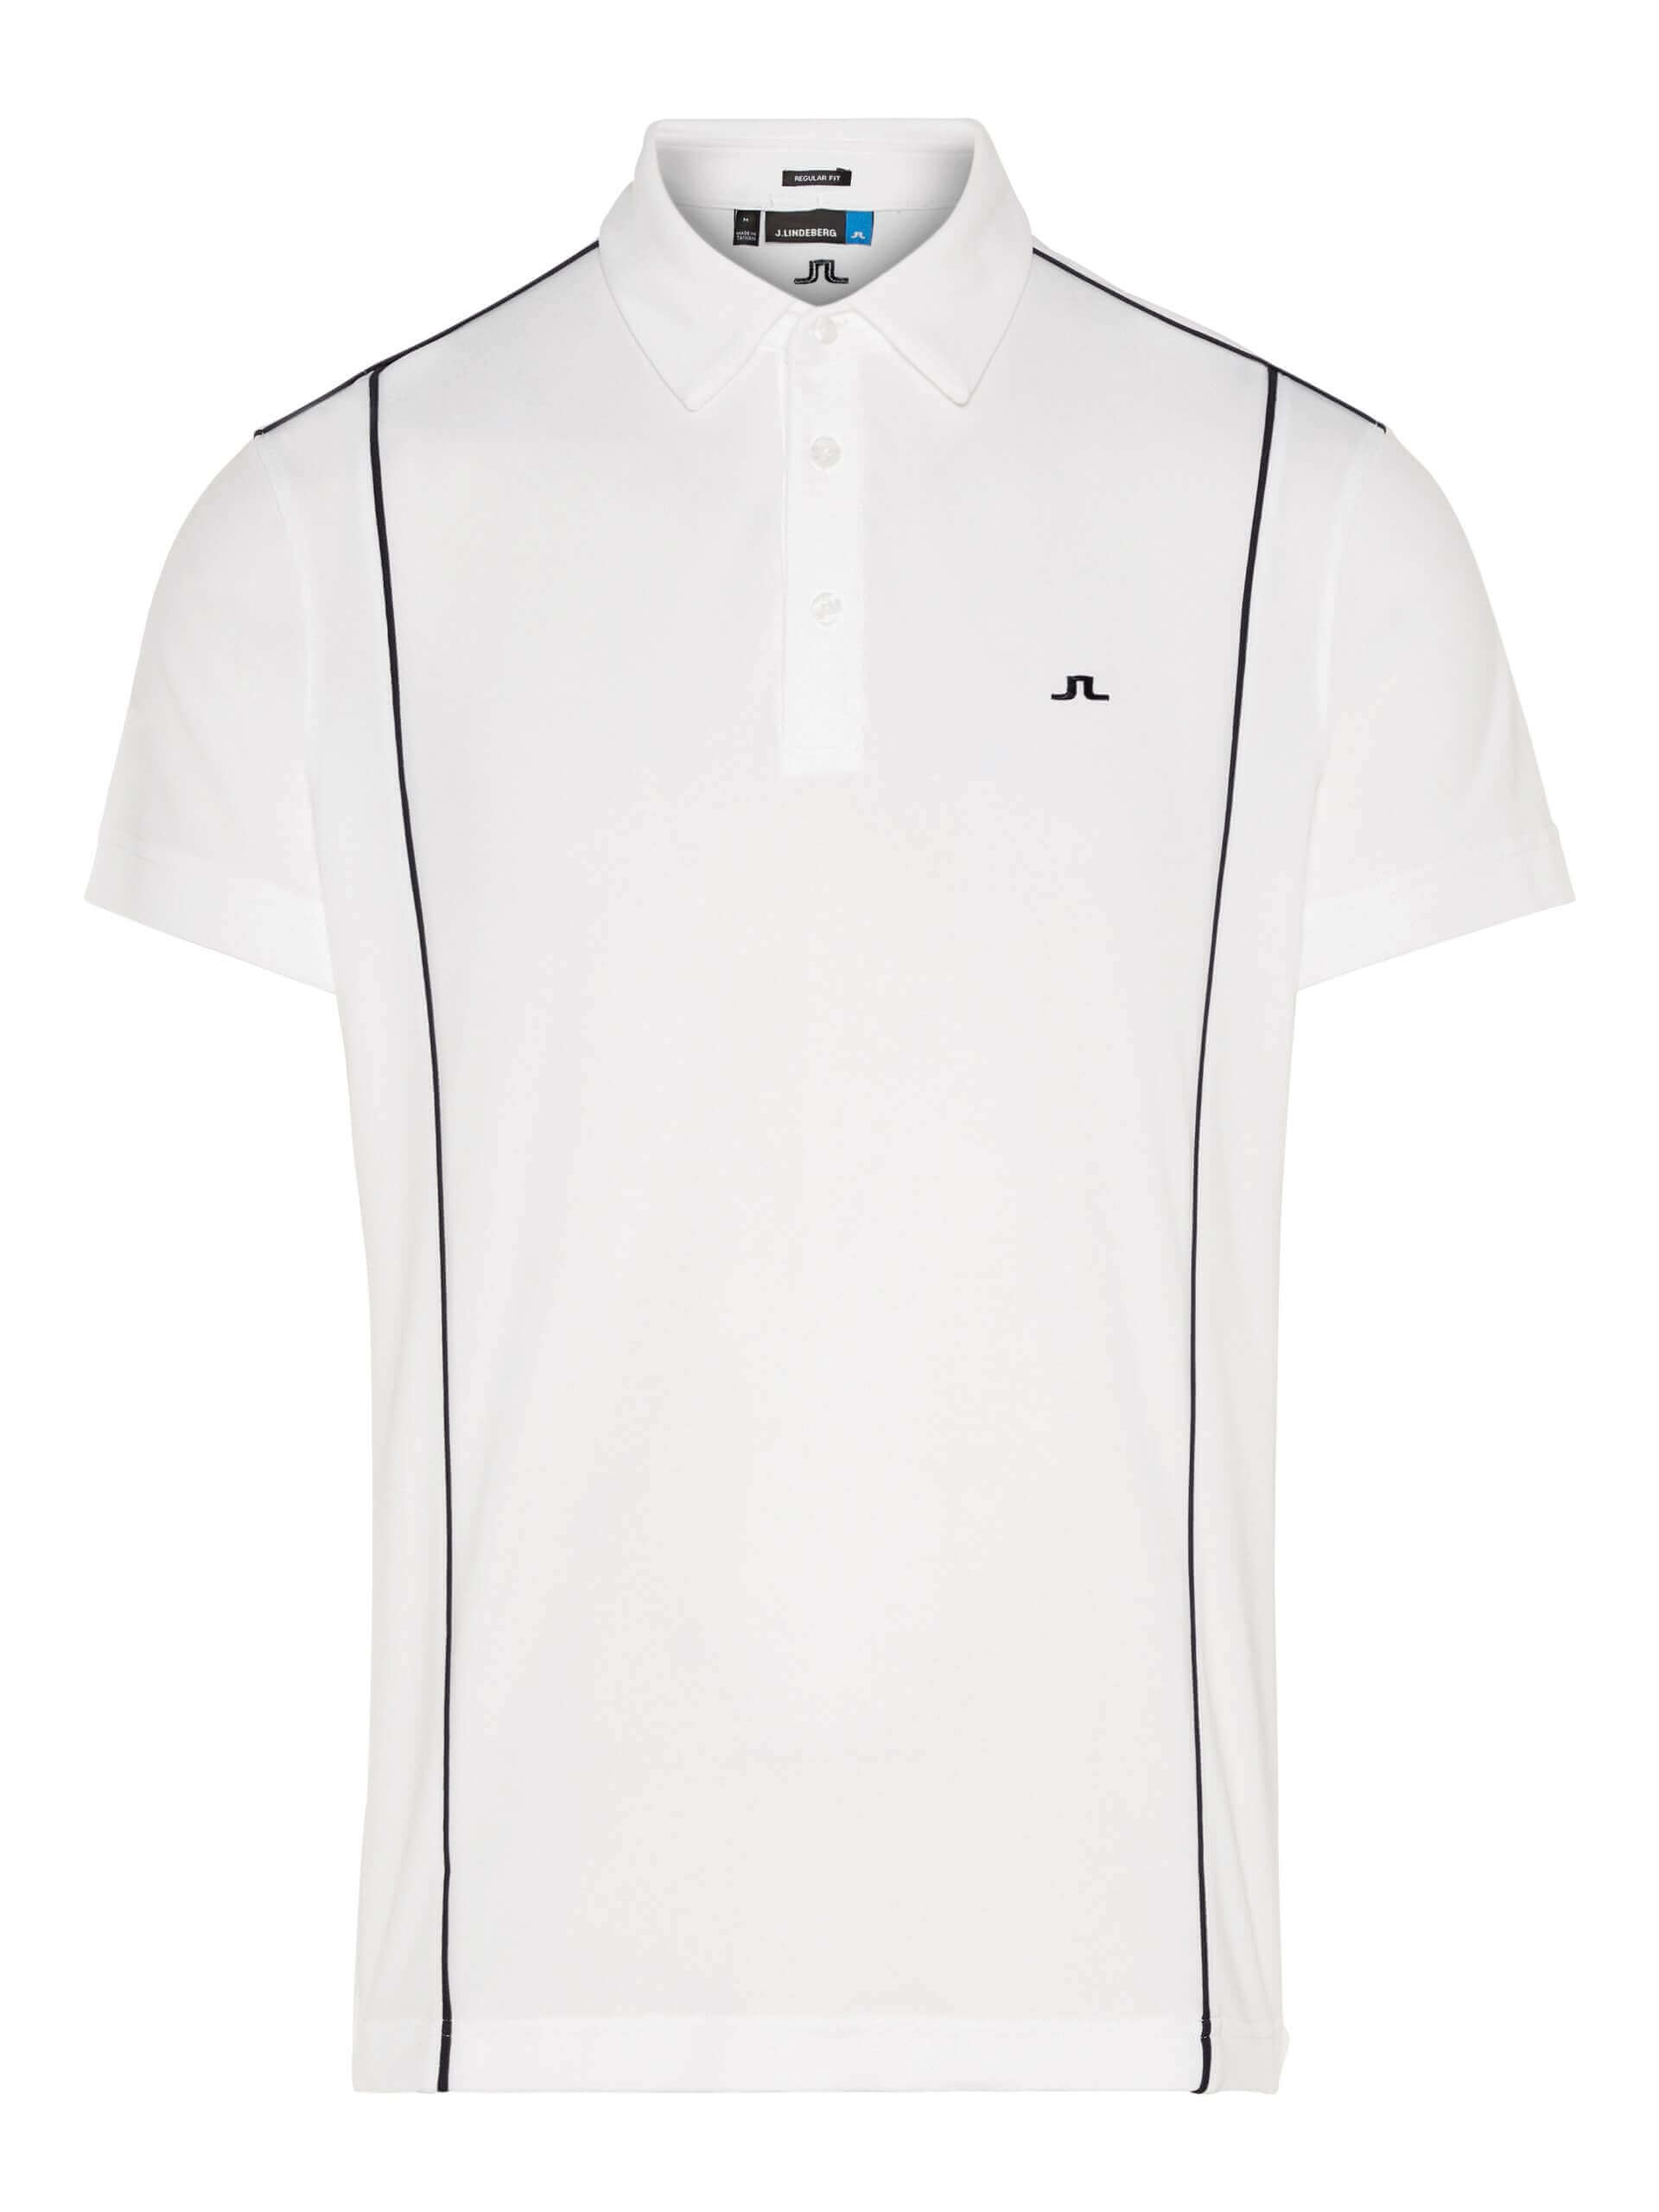 J.Lindeberg - LUKE Reg LUX Pique in white with navy pin stripe